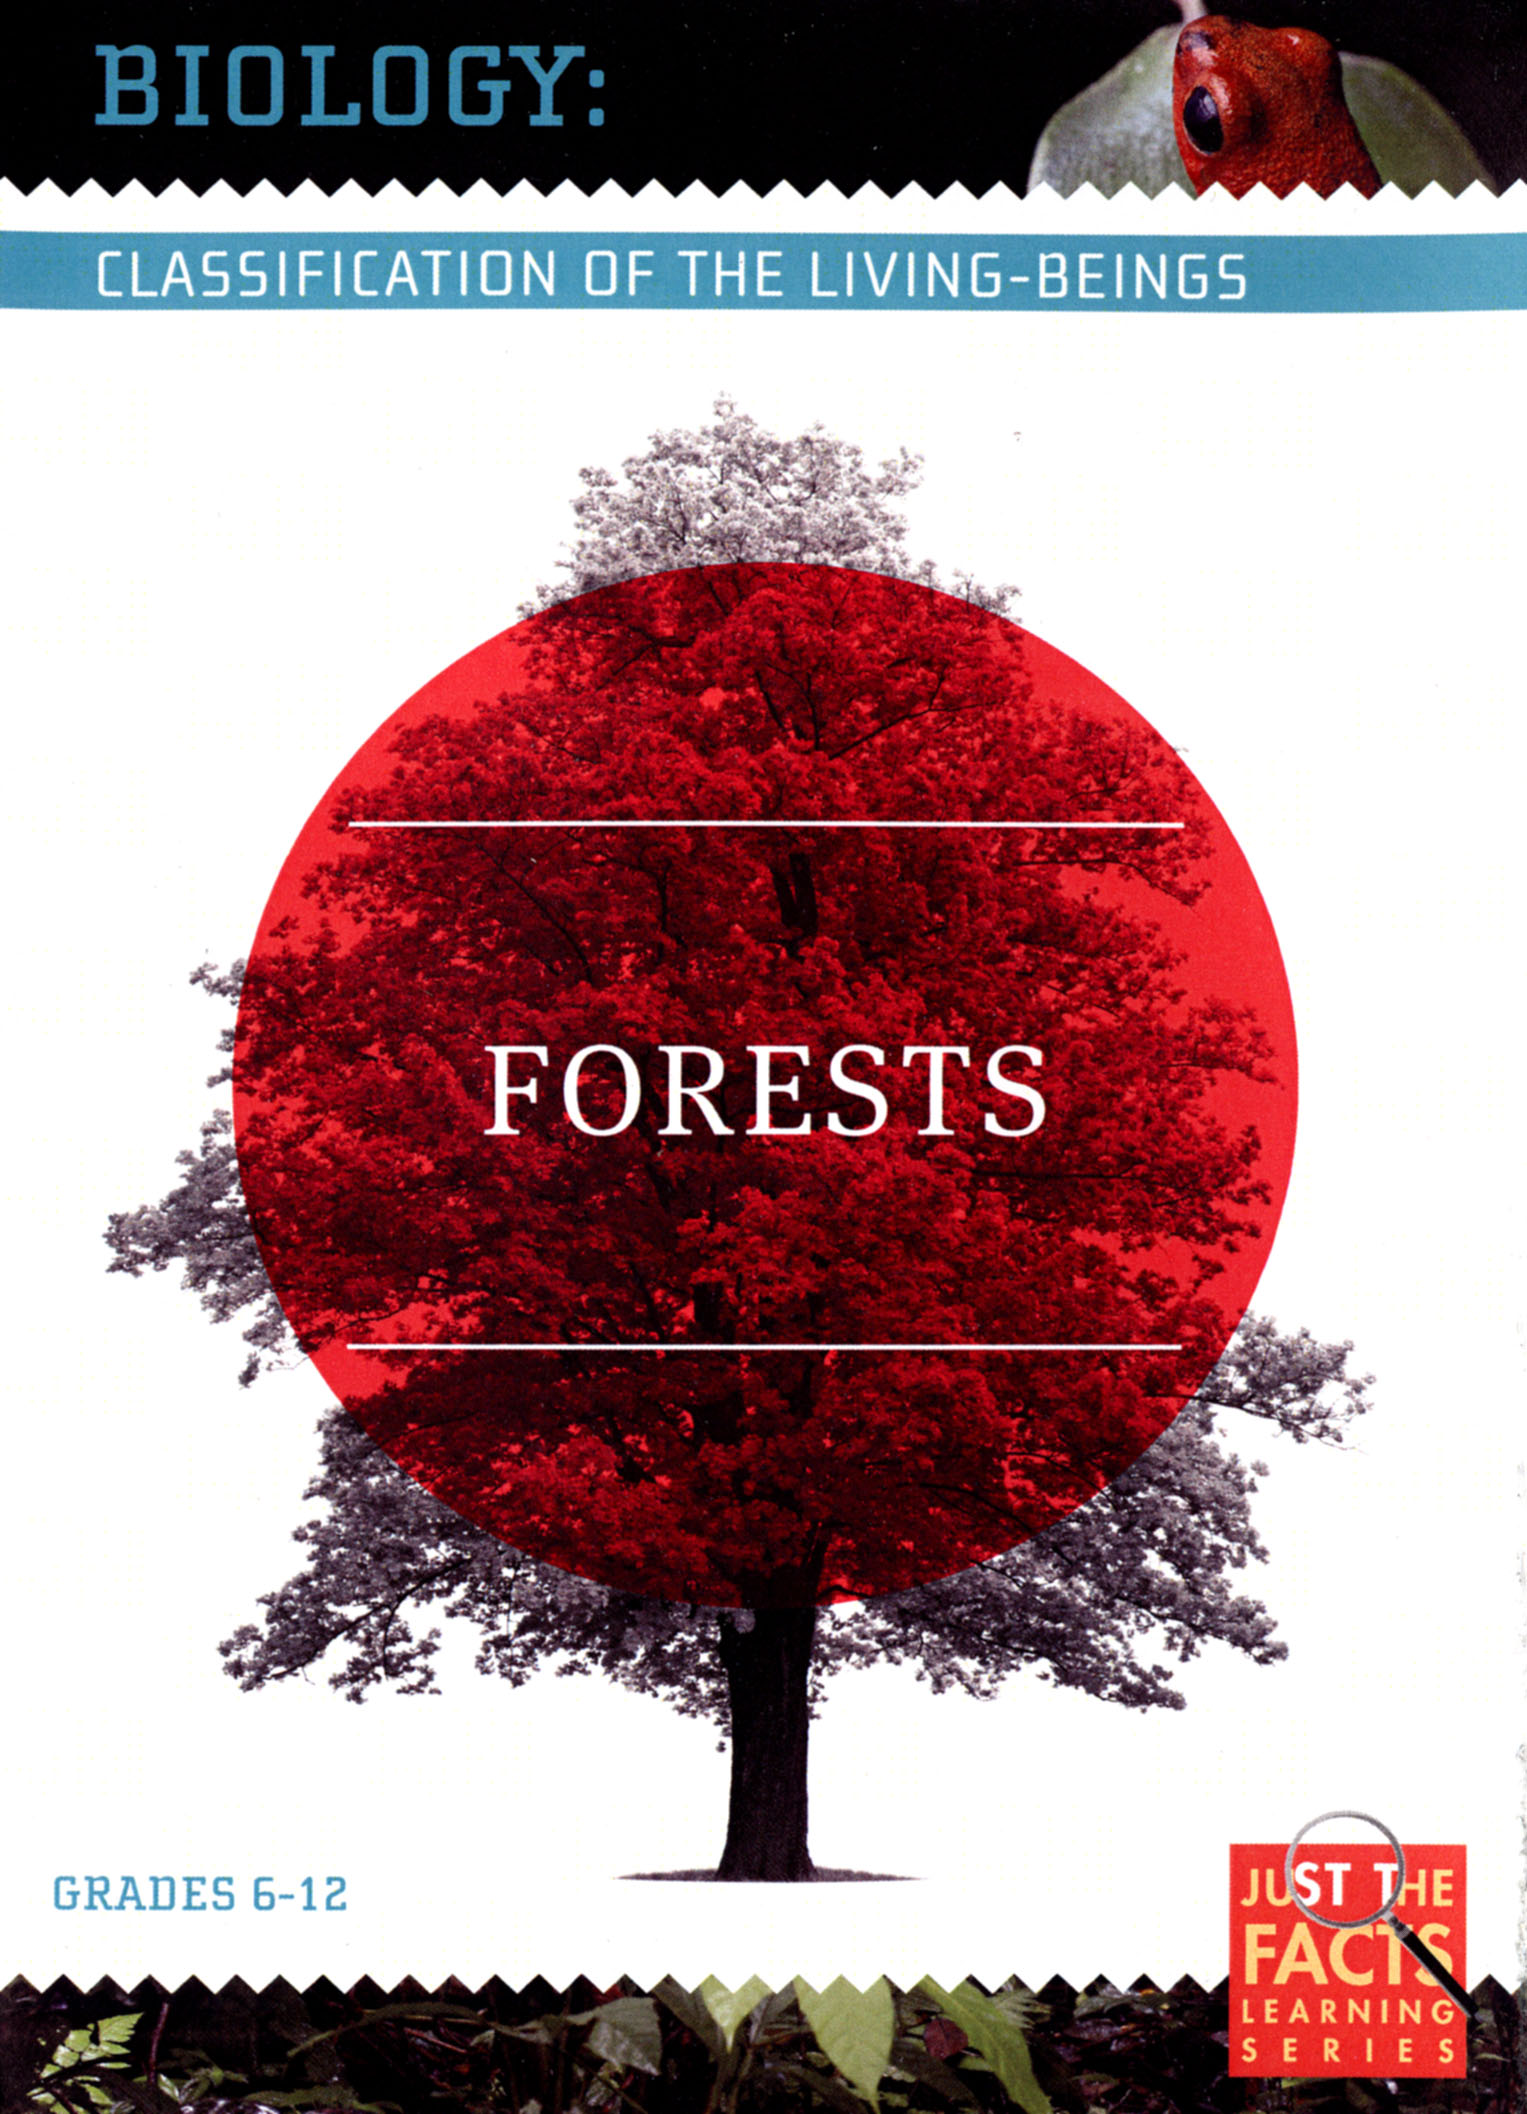 Biology Classification: Forests